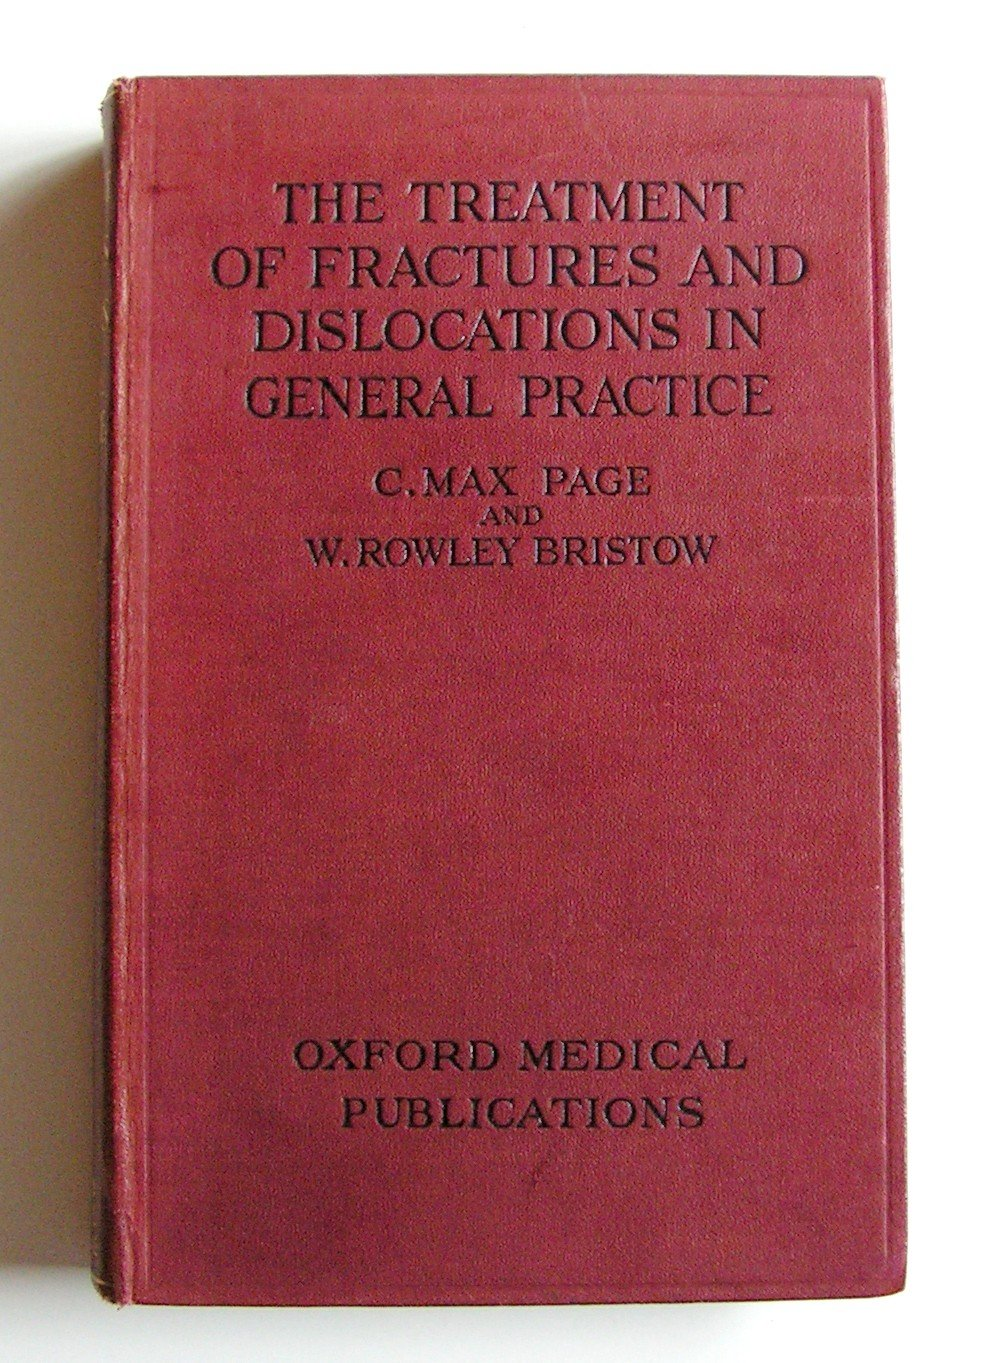 1929 The Treatment of Fractures and Dislocations in General Practice, 3 Ed - C. Max Page